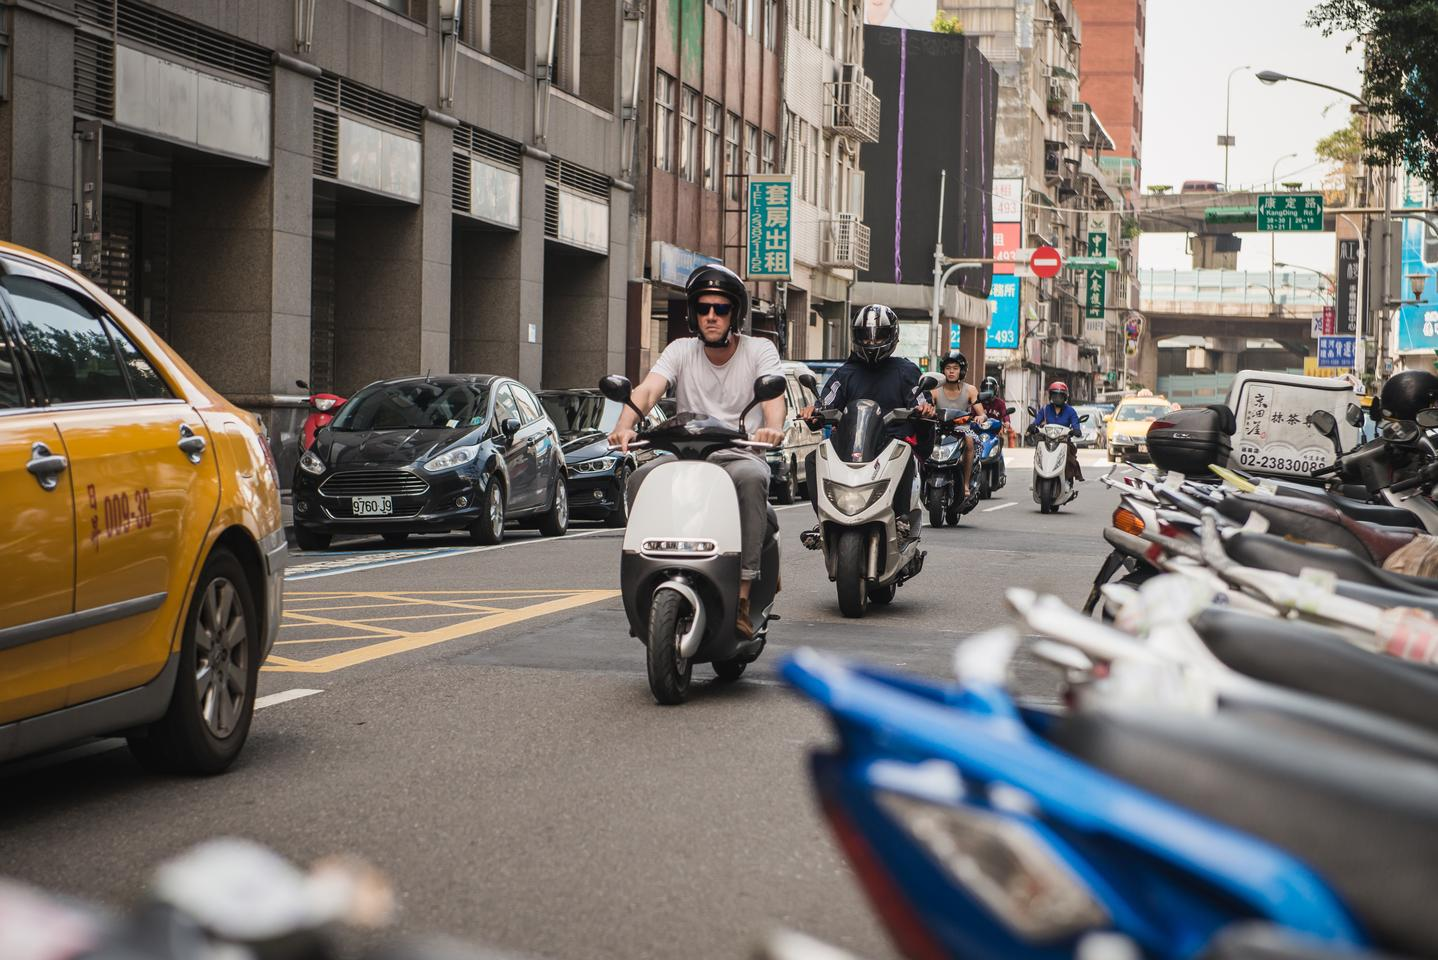 Gogoro's smart scooters will soon be available in Taiwan as part of a rental service